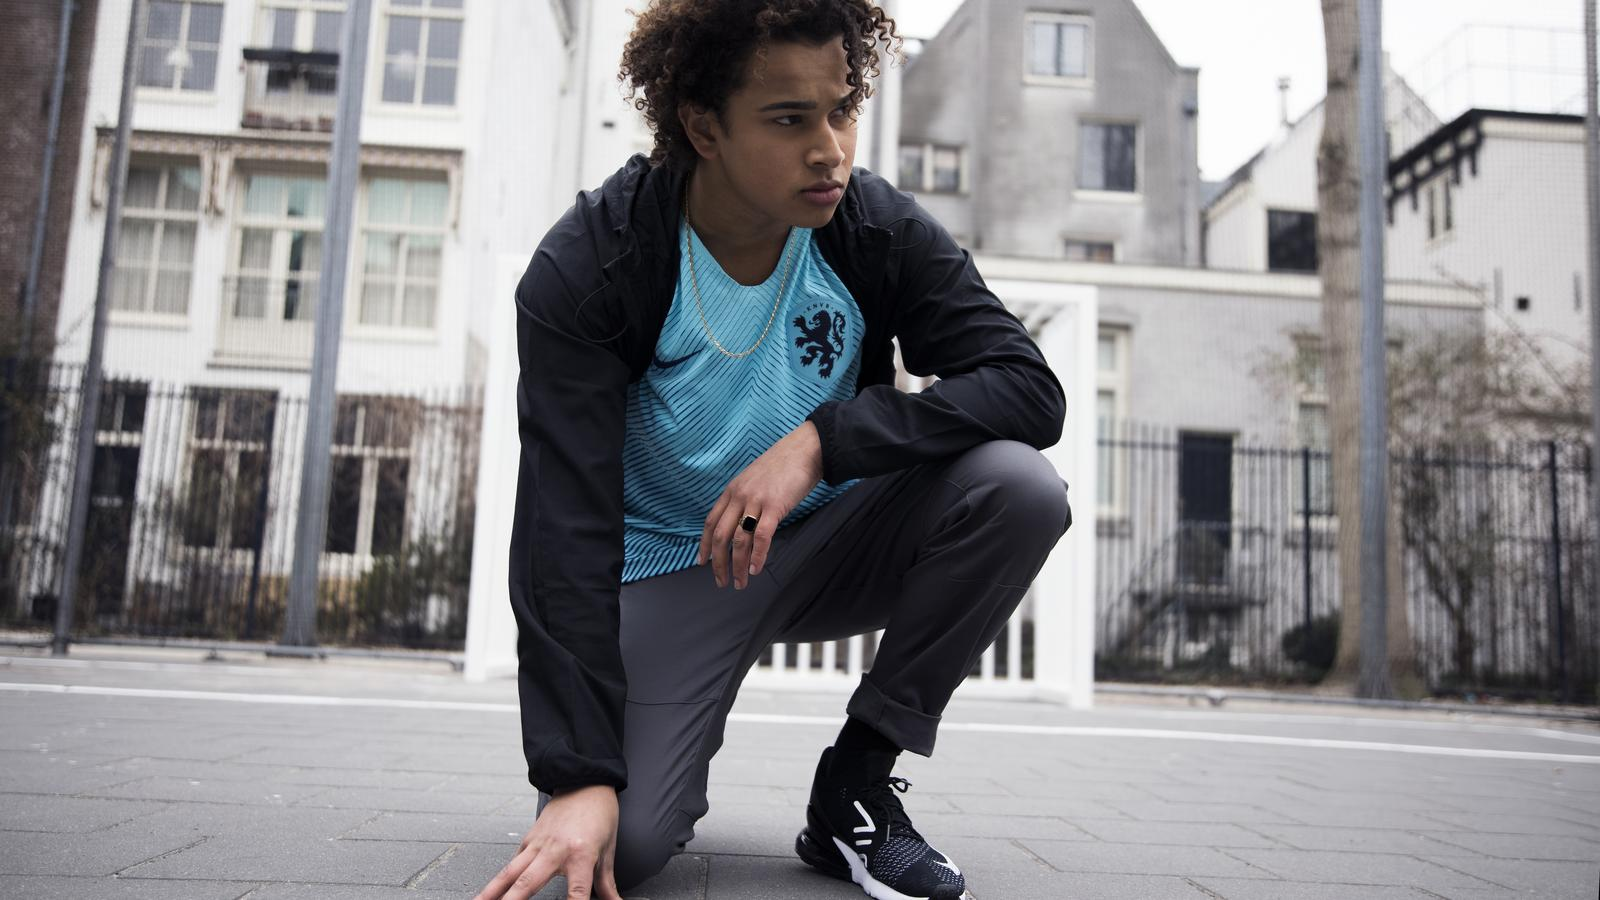 new product d845a 7b505 The Netherlands' 2018/19 Away Kit by Nike Revealed